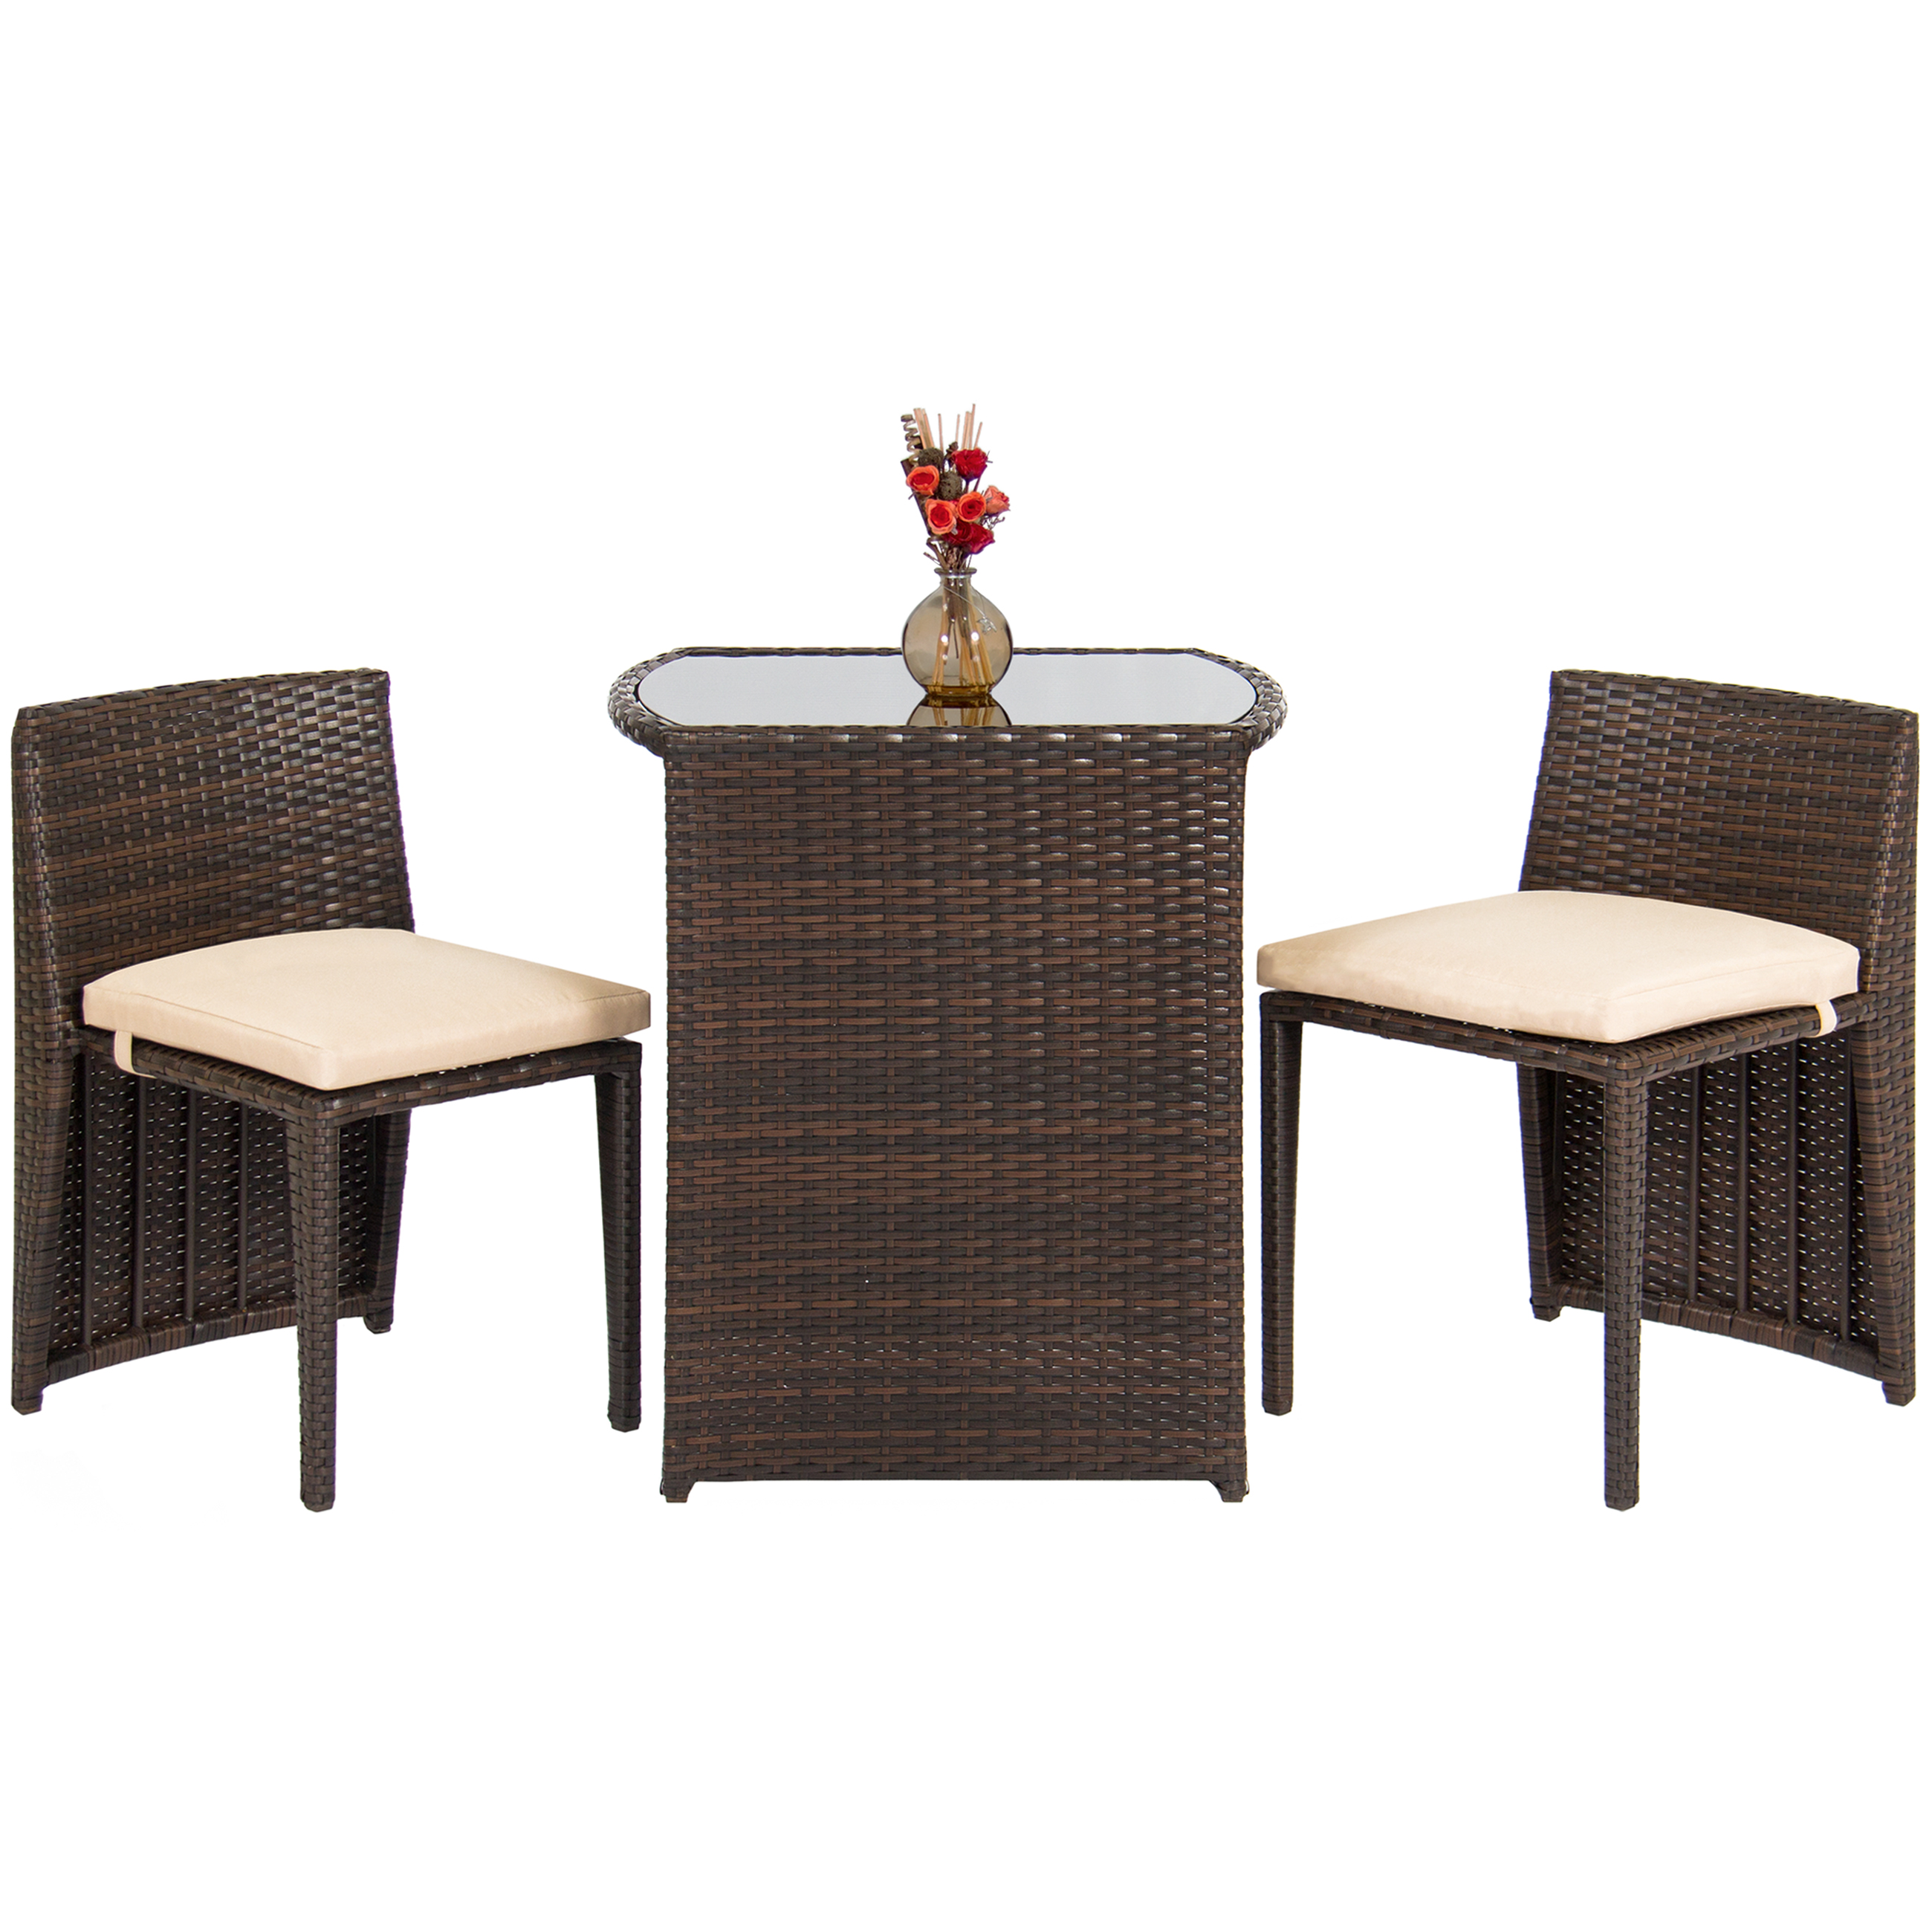 Best Choice Products 3-Piece Wicker Bistro Set w  Glass Top Table, 2 Chairs, Space Saving Design Brown by Best Choice Products